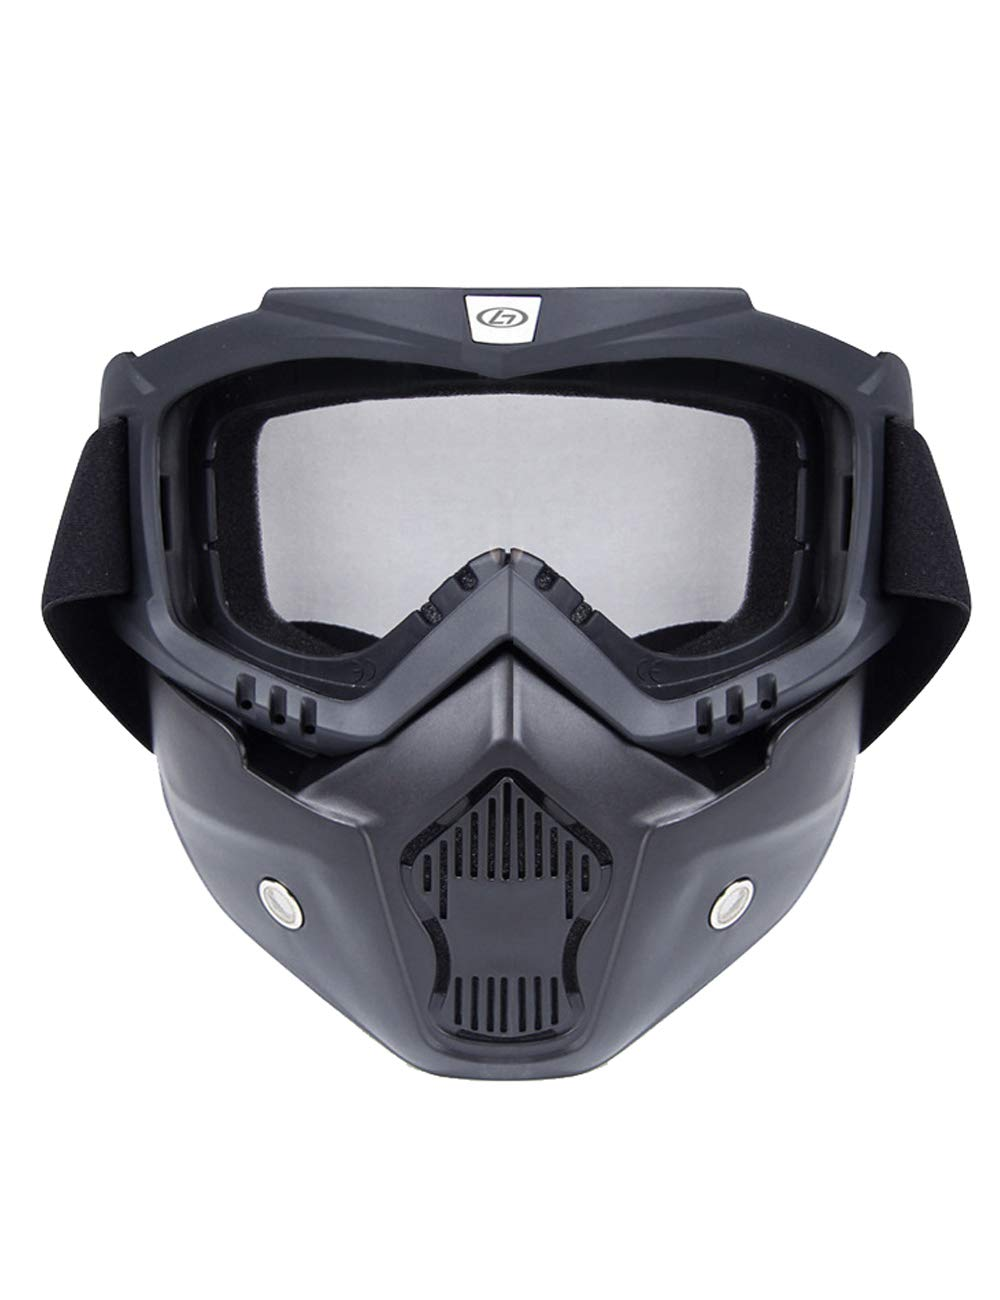 Motorcycle Goggles Bicycle Mask Protecting Padding Helmet Sunglasses with Removable Face Mask Adjustable Strap Wuxi Shuailande Trade Co. Ltd. CK-HGY-H021-BLCK